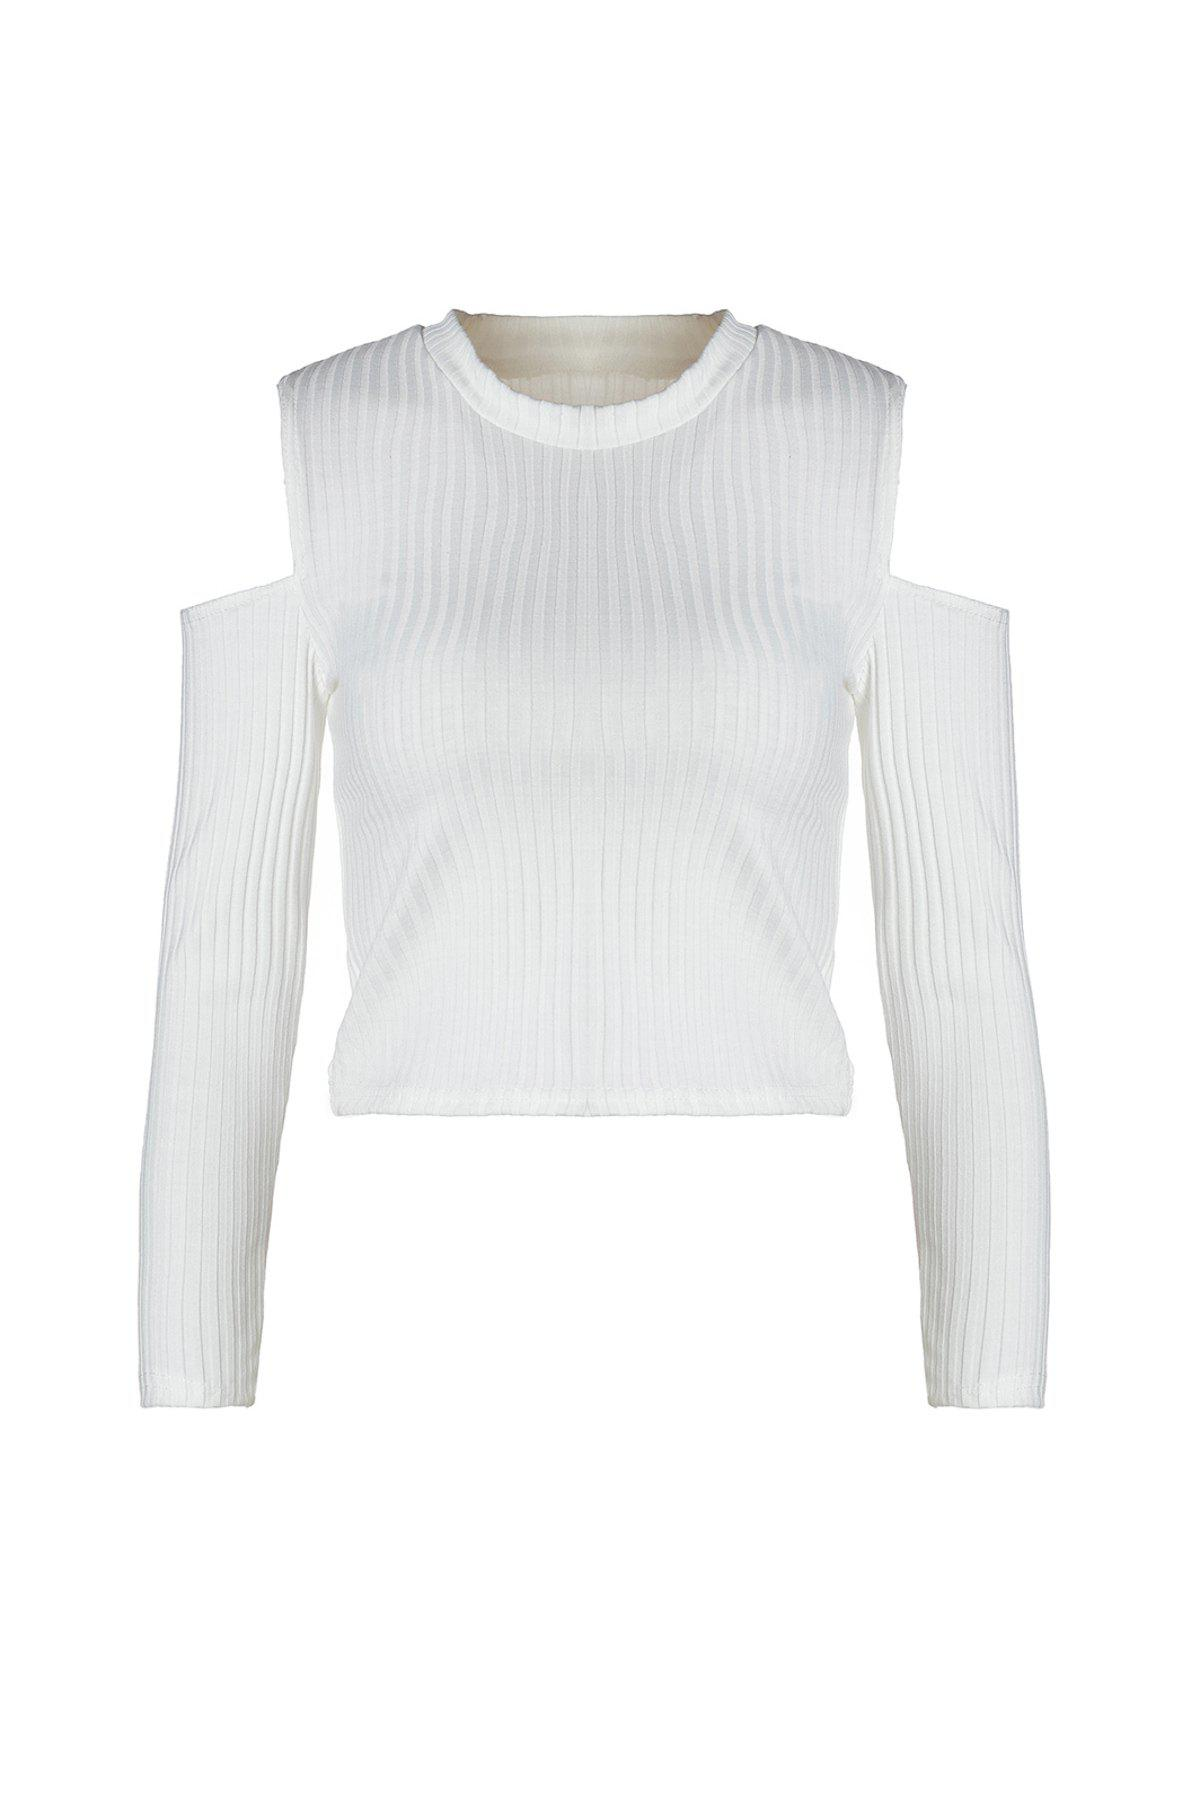 0d6c82cf1b0 53% OFF] Stylish Round Neck Long Sleeve White Knit Women's Crop Top ...